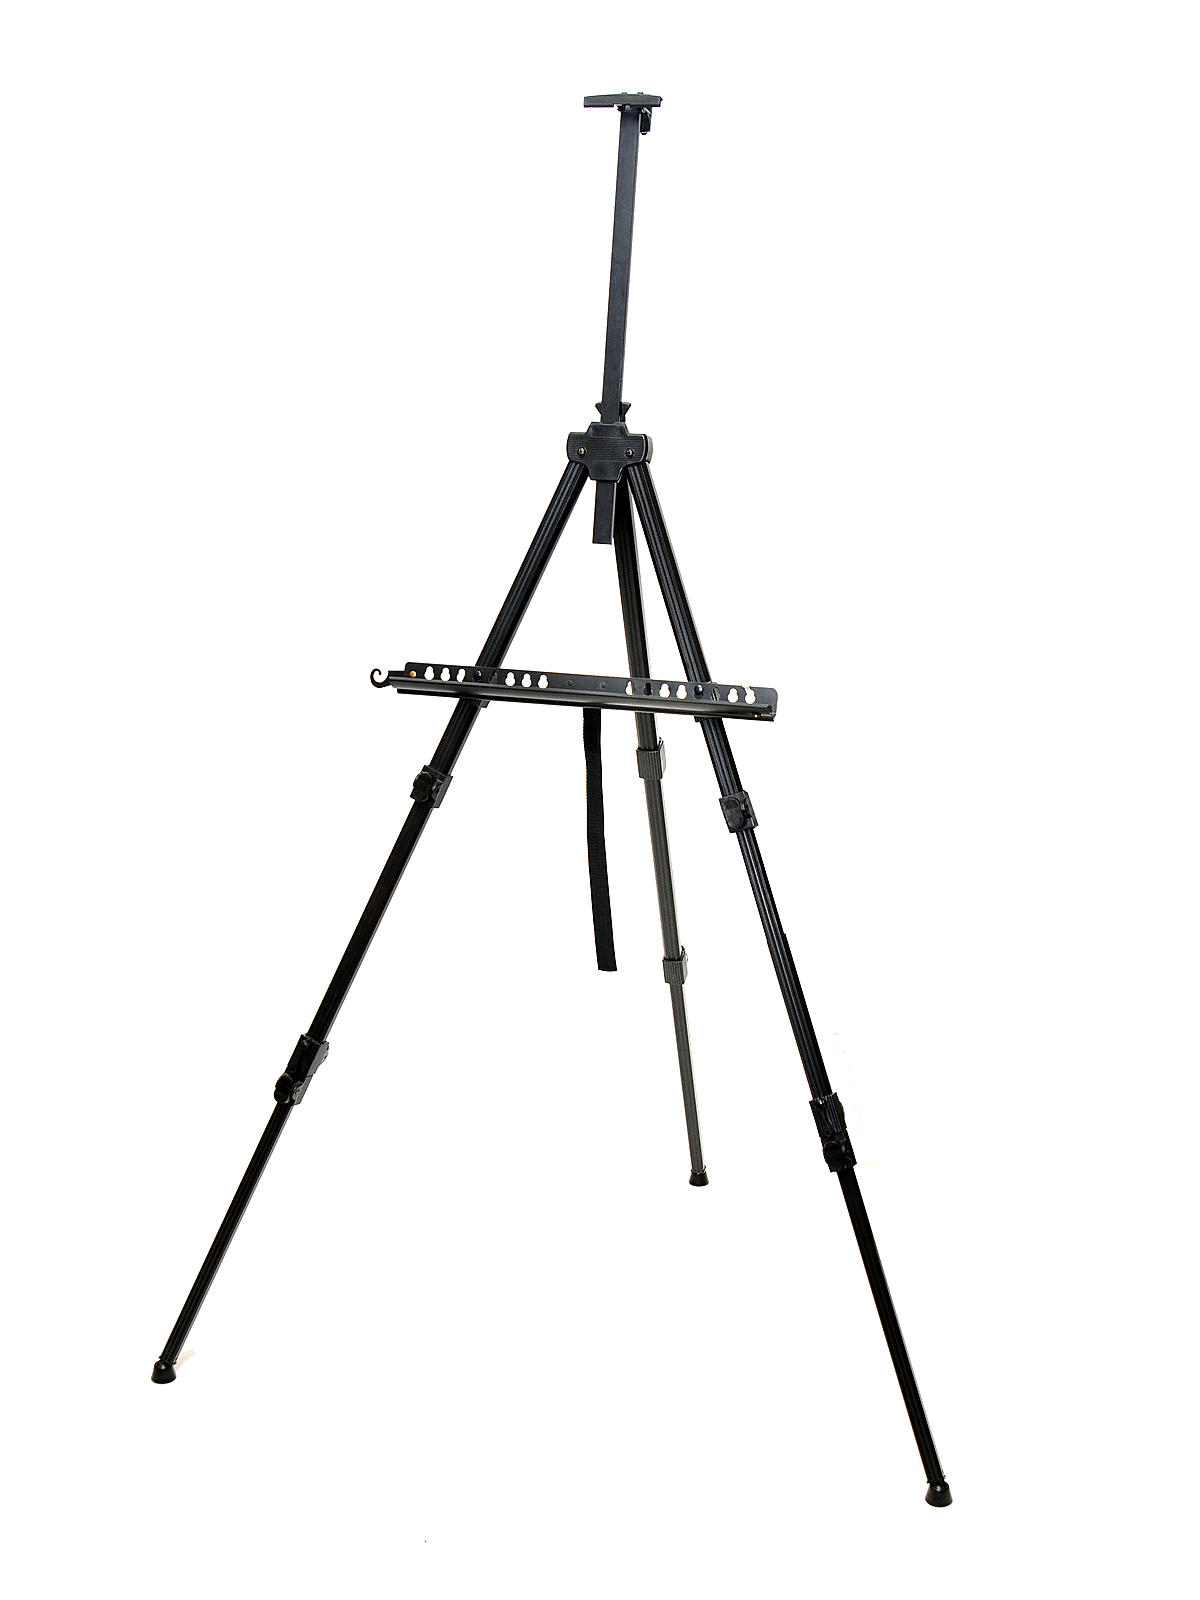 Heritage Classic Aluminum Easel with Nylon Case